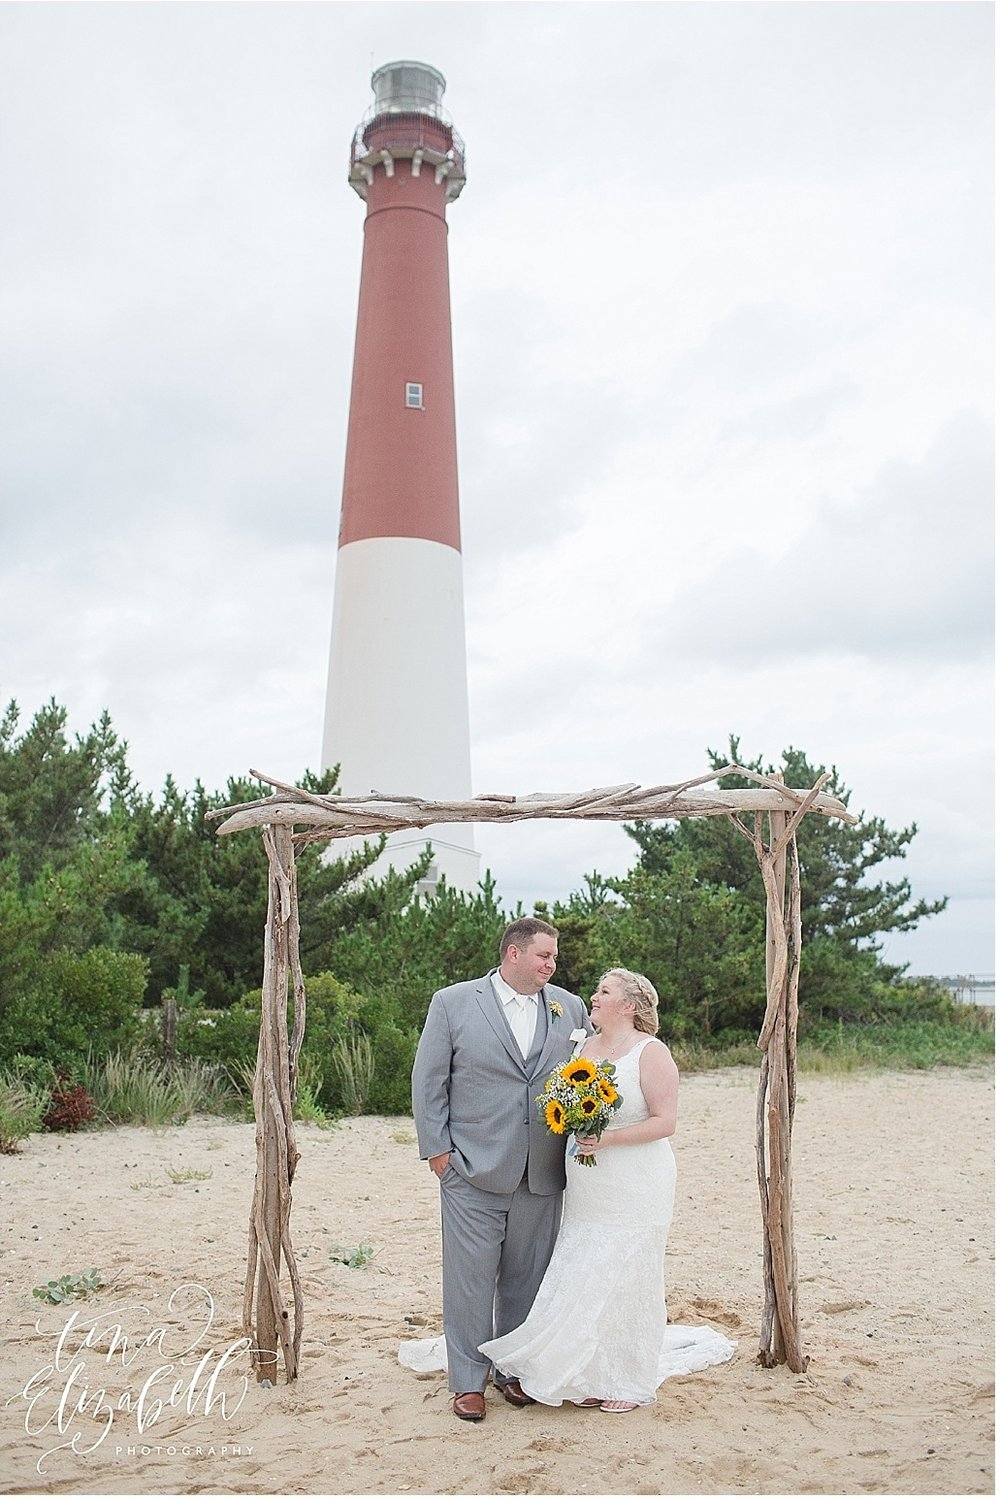 Barnegat-Light-Long-Beach-Island-Wedding-Photos-Tina-Elizabeth-Photography_8450.jpg